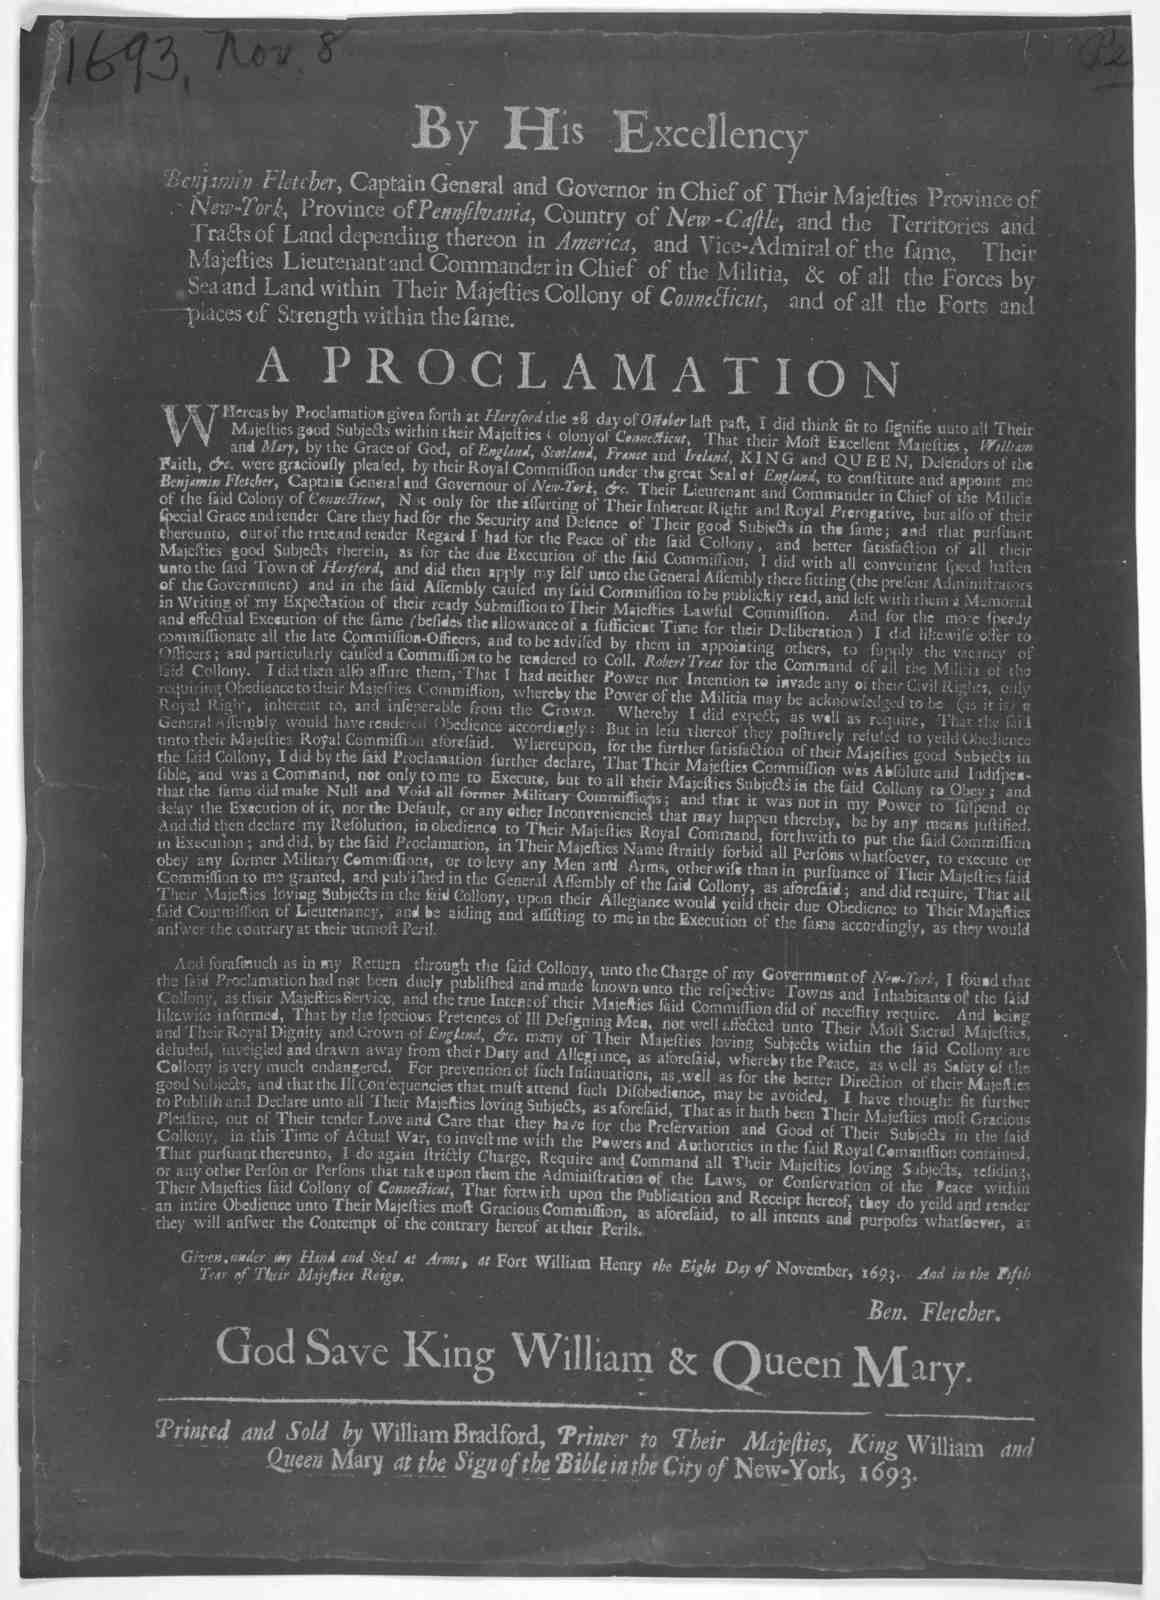 By His Excellency Benjamin Fletcher, Captain General and Governor in Chief of their Majesties Province of New-York, Province of Pennsylvania, County of New-Castle, and the Territories and tracts of land depending theron in America, and vice-admi